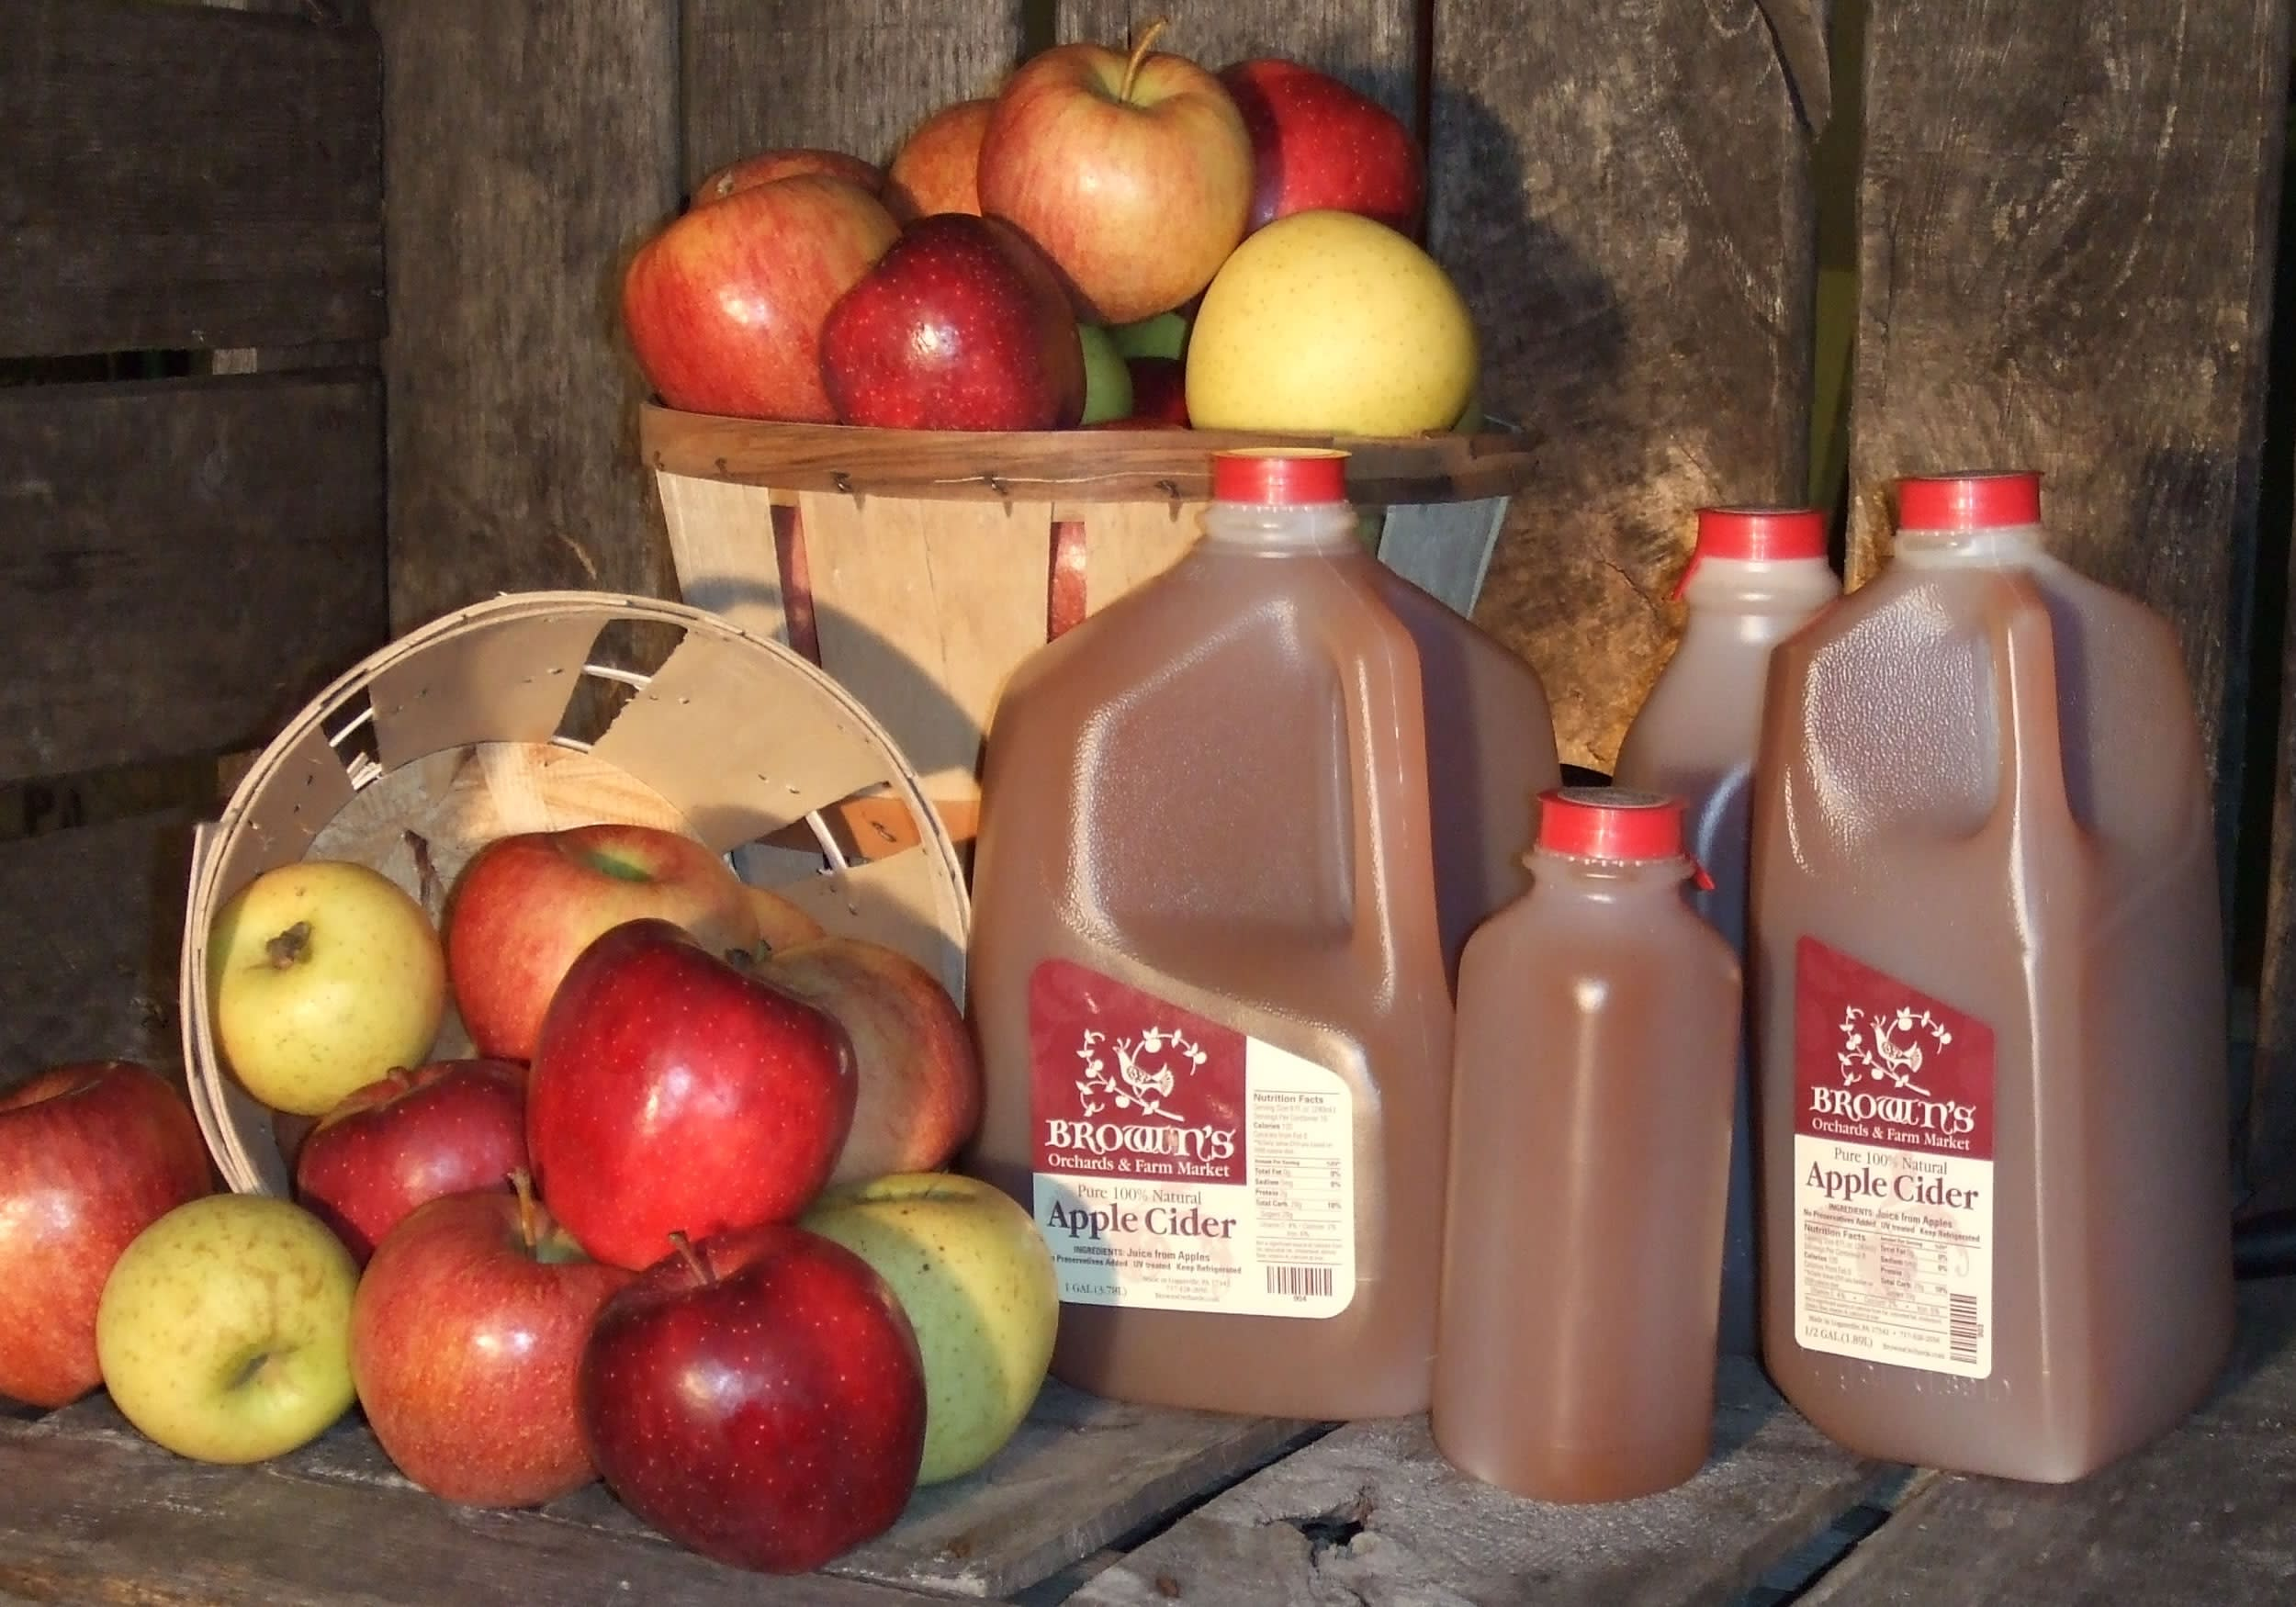 The secret to Brown's apple cider? It's just apples.